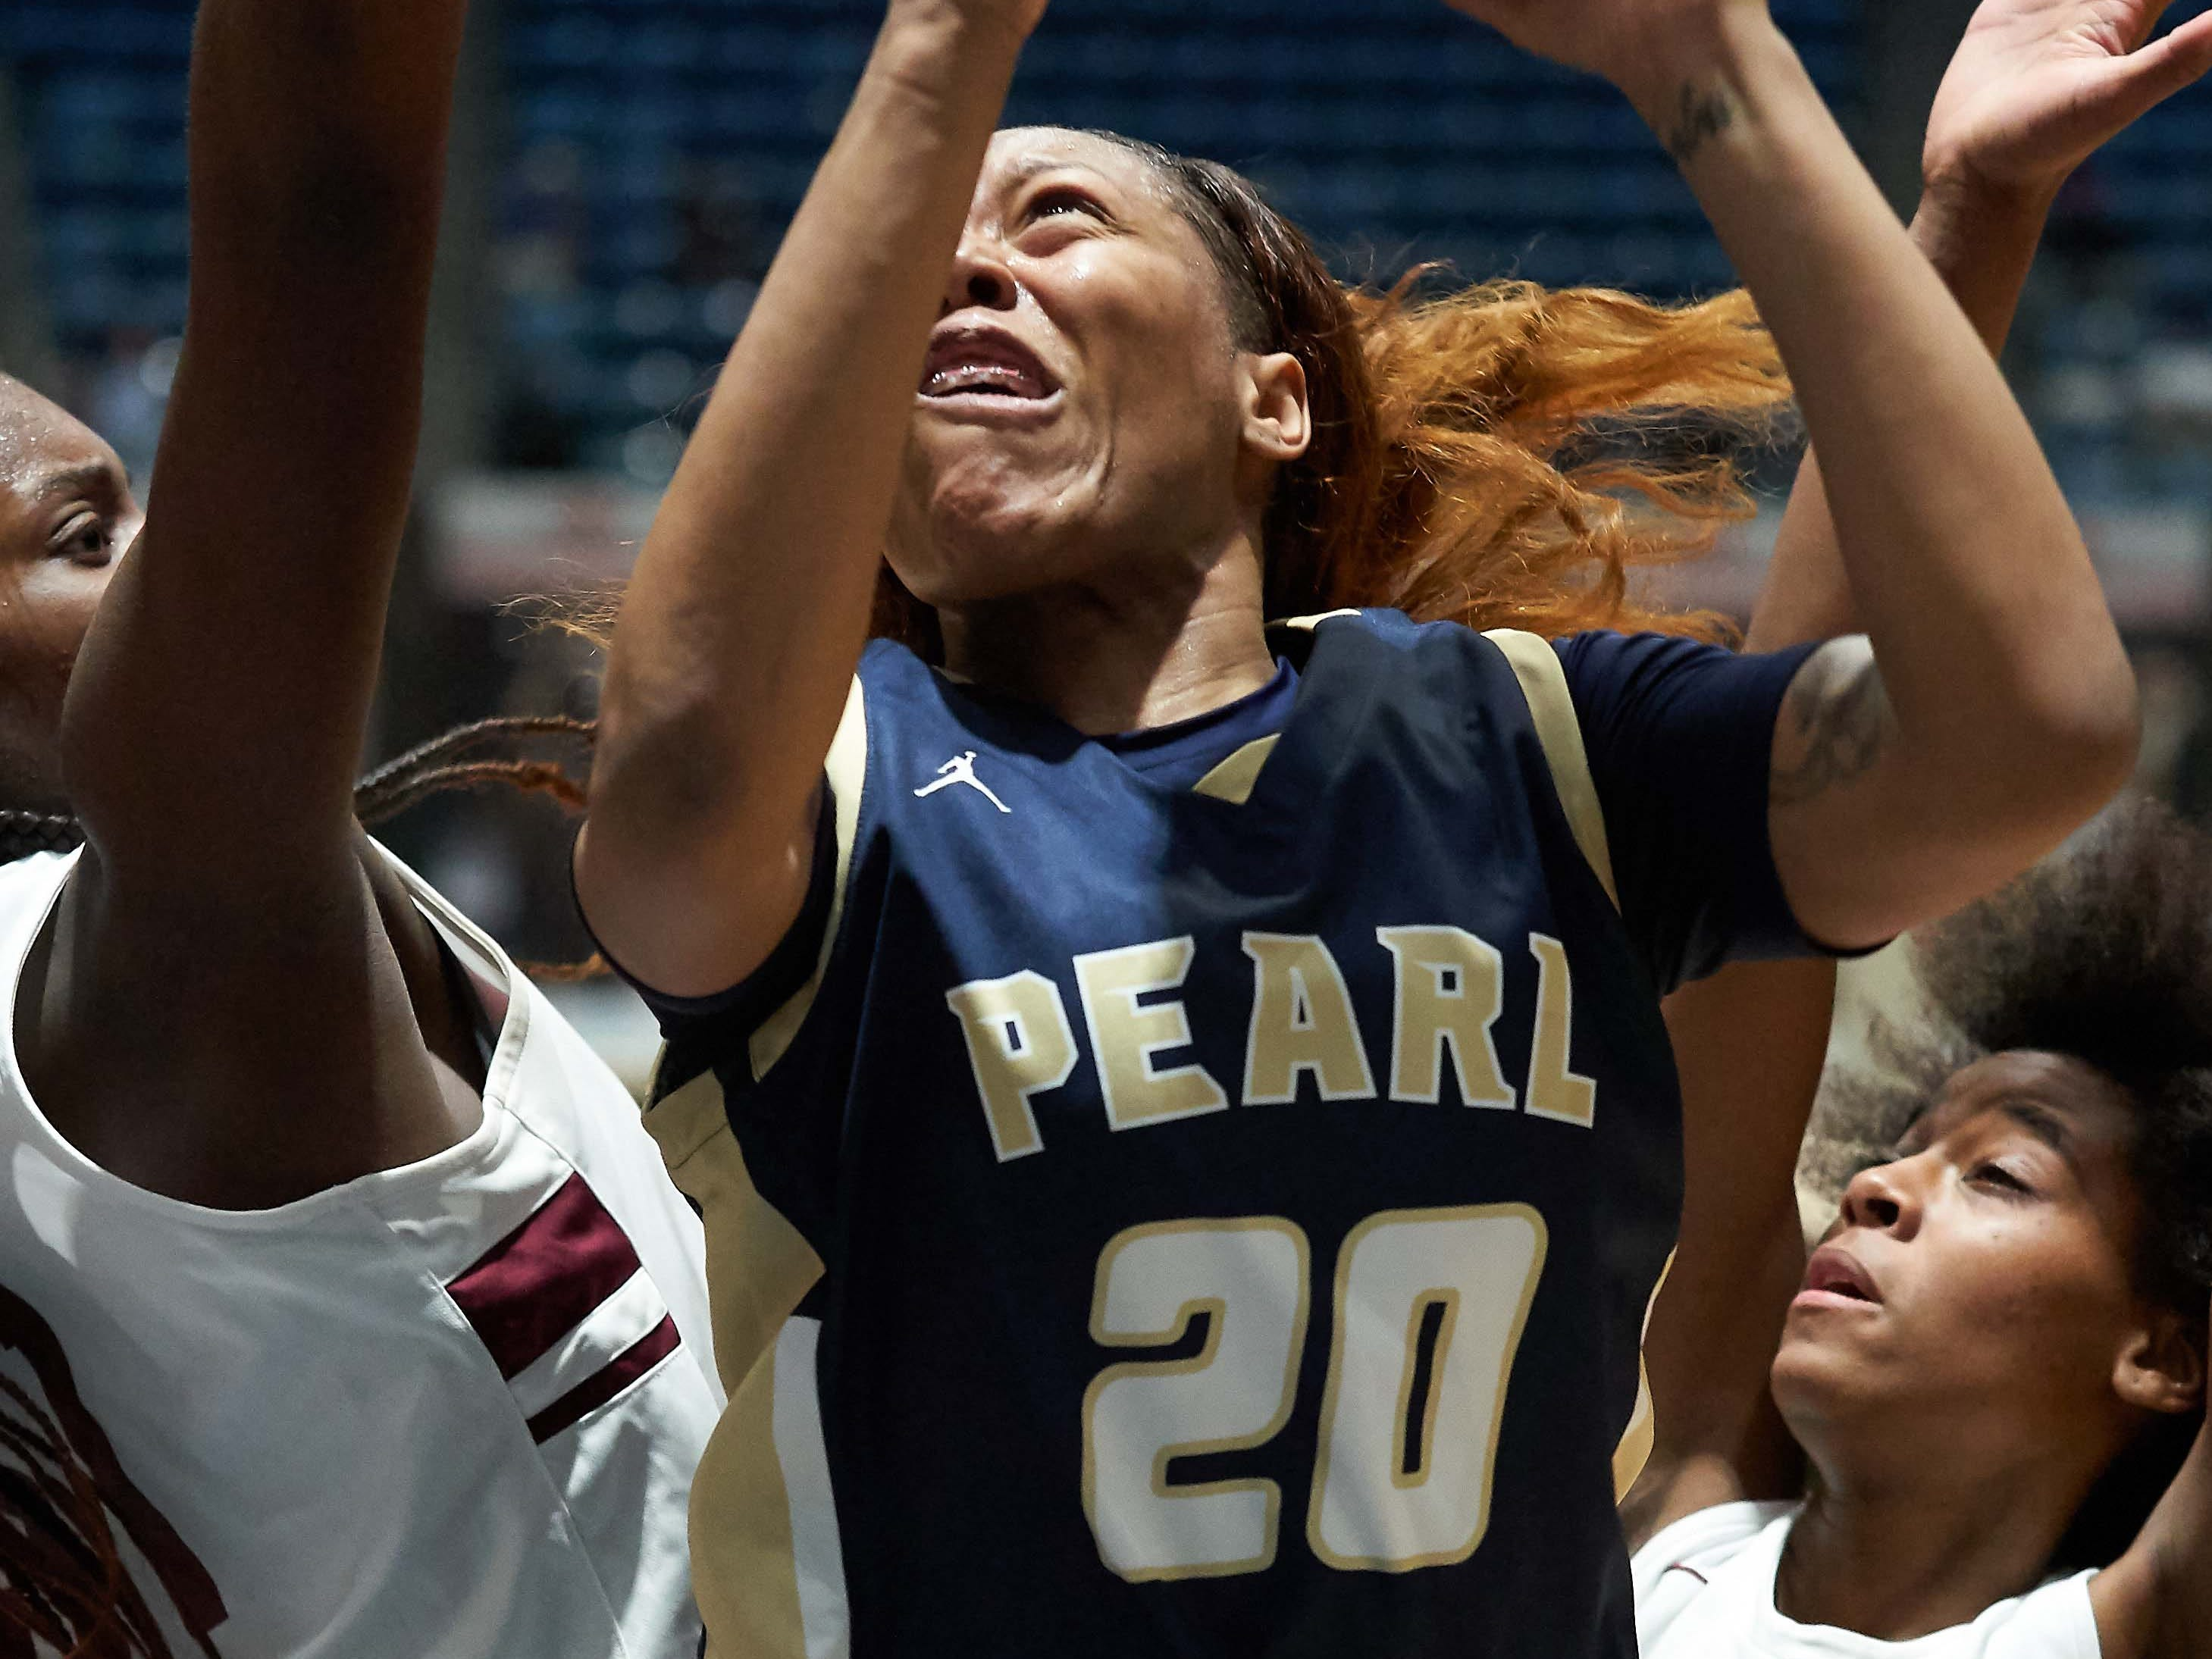 Pearl's Jayla Alexander (20) shoots against Terry during the MHSAA 6A Girls Basketball Championship Finals held at the Mississippi Coliseum in Jackson, MS, Saturday March 9th, 2019.(Bob Smith)